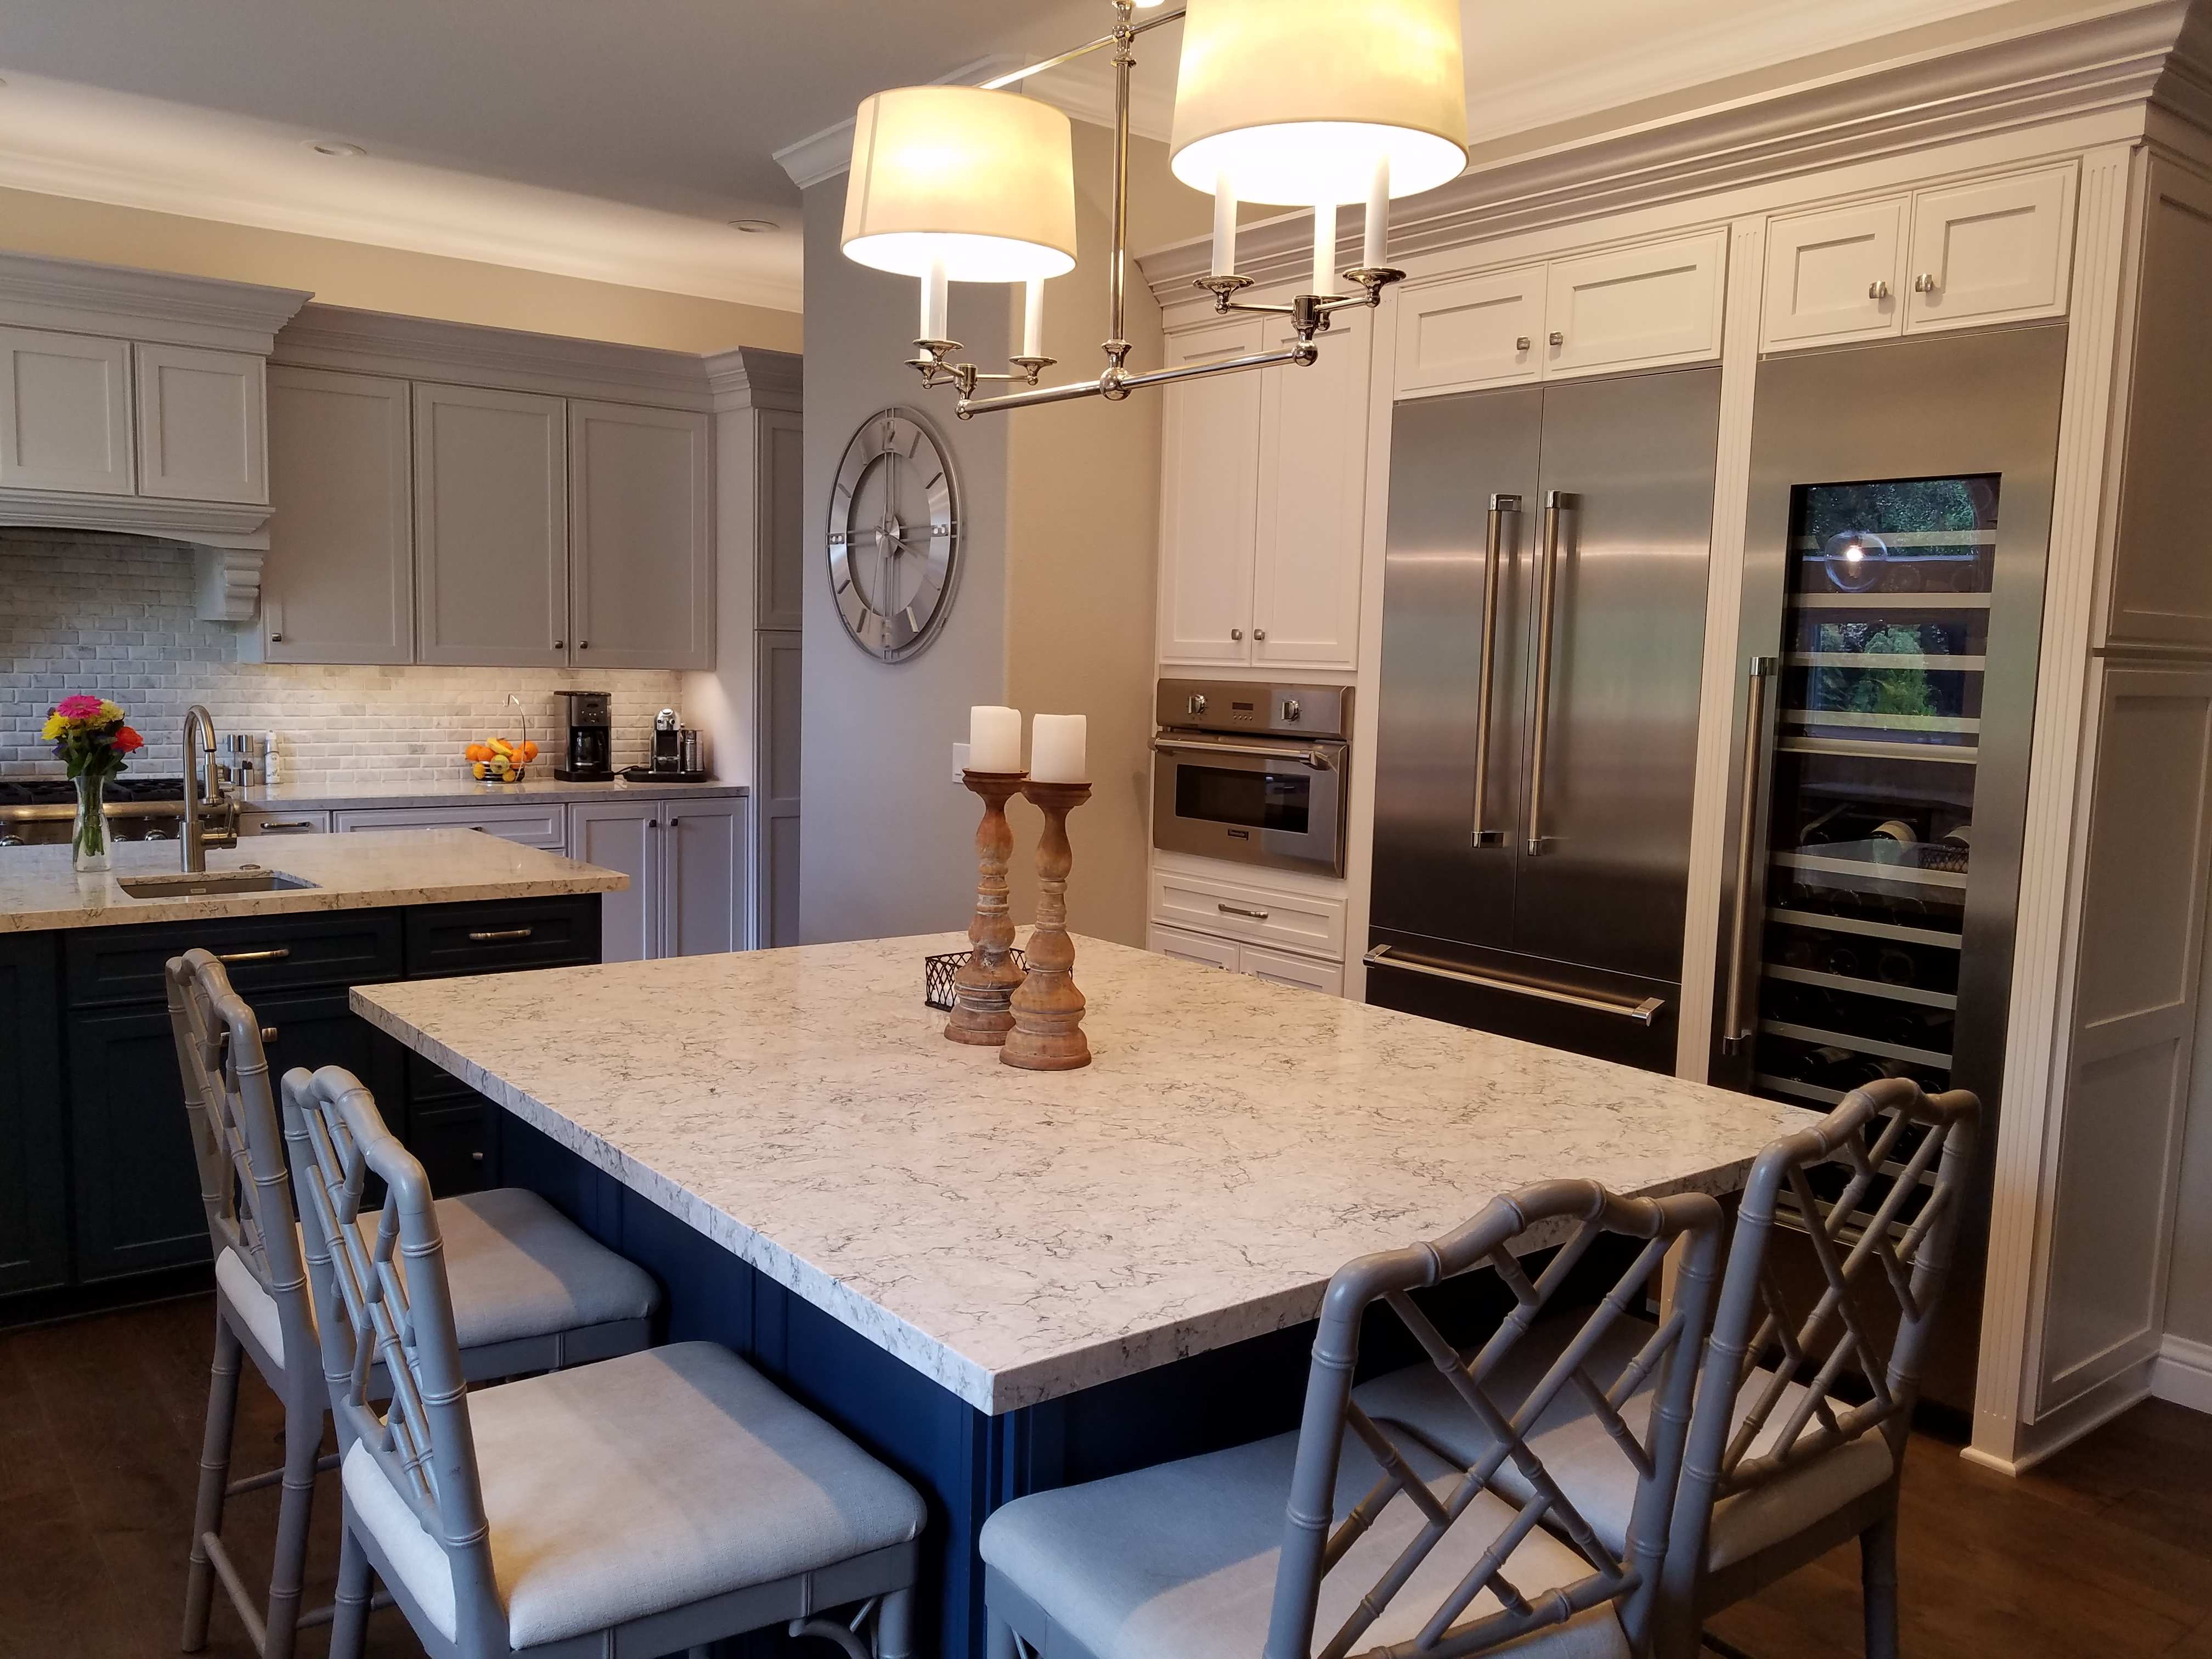 White marble dining room table, stainless fridge in background